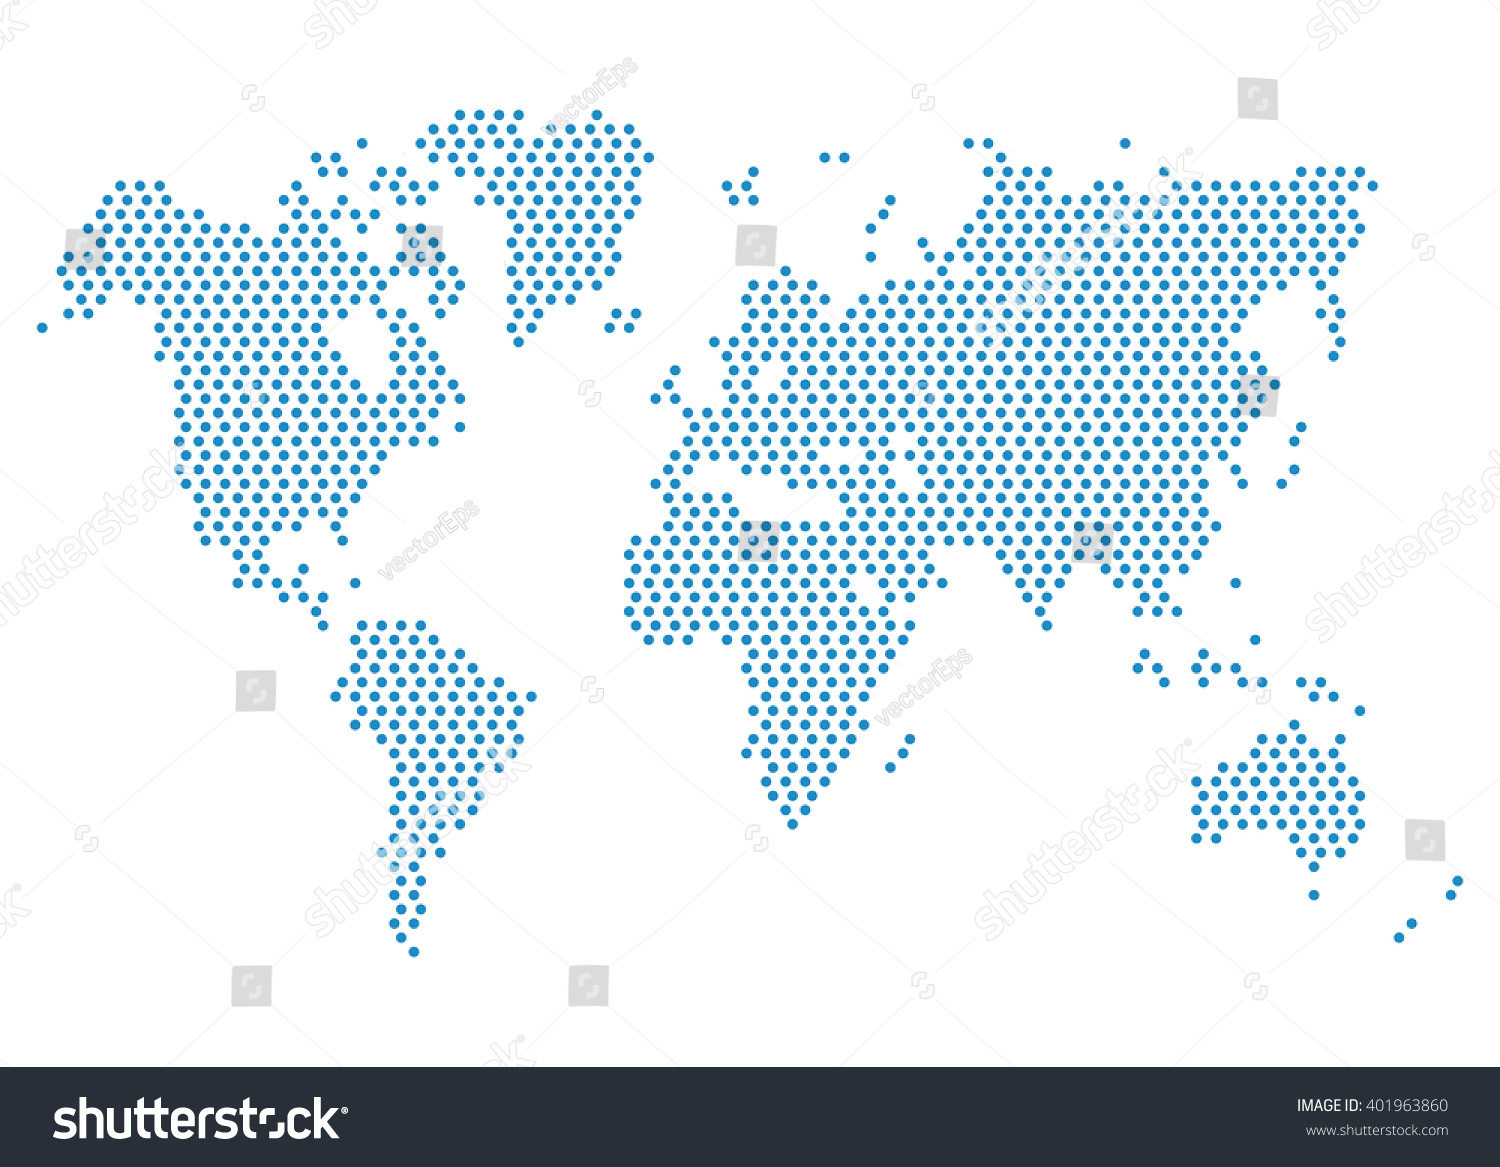 Dot world map vector isolated on vectores en stock 401963860 dot world map vector isolated on white background blue continent points worldmap template for gumiabroncs Image collections